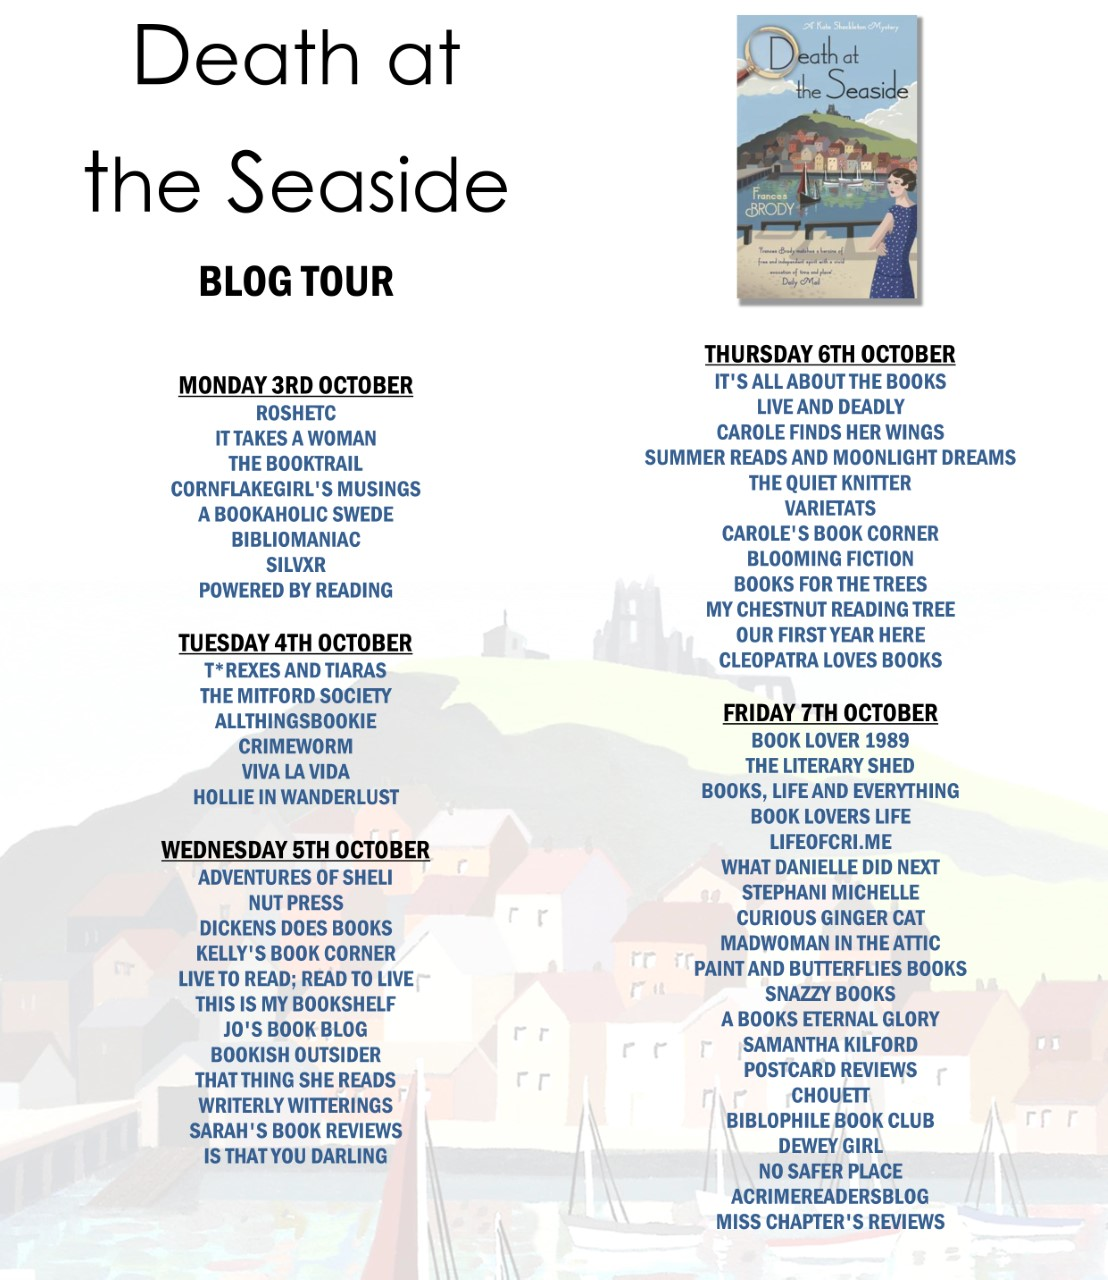 Death at the Seaside blog tour